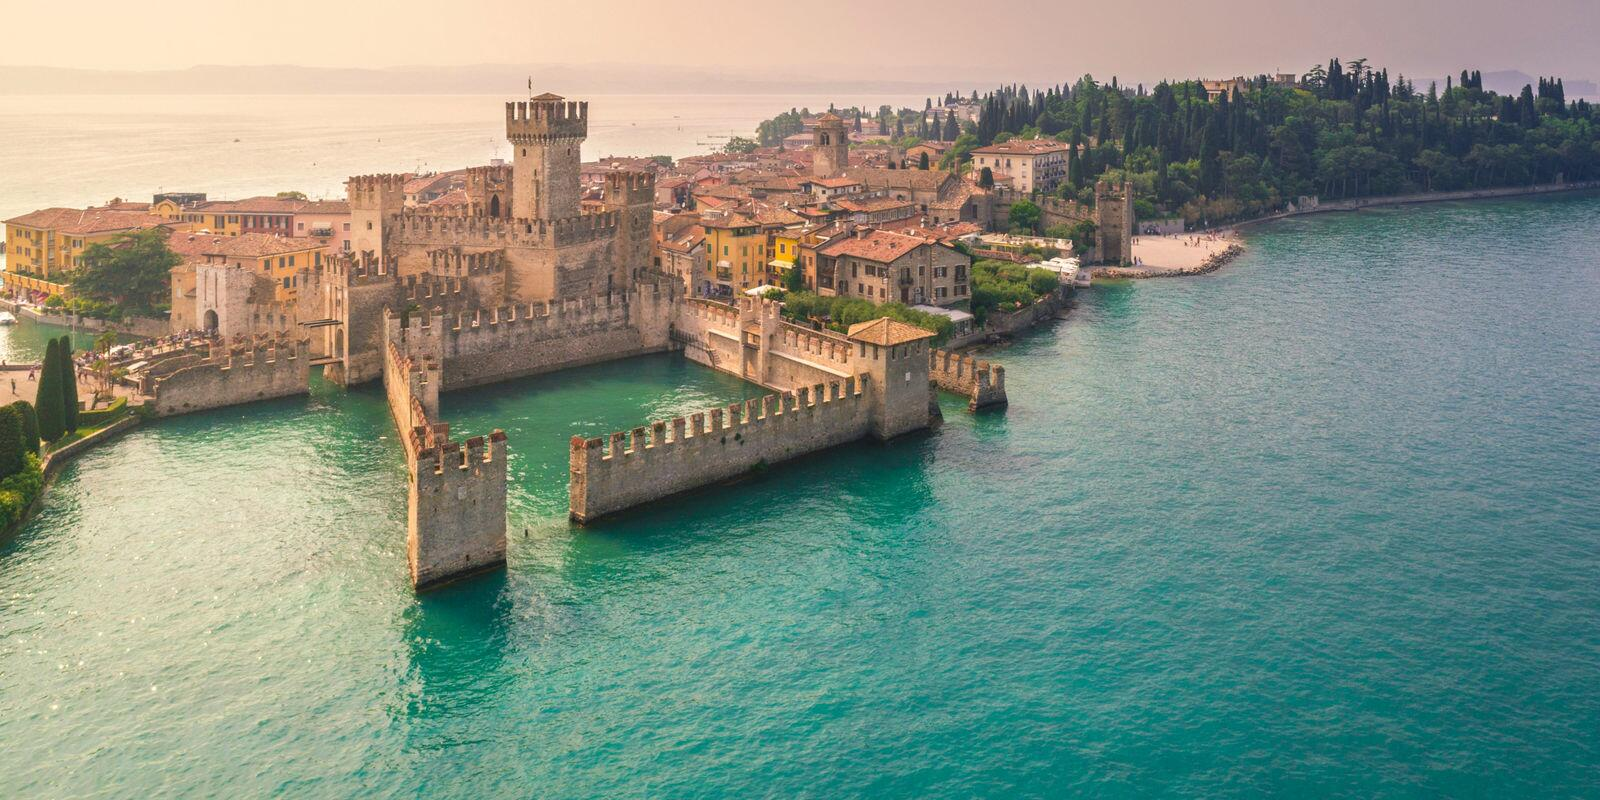 Sailing, visit to the castle of Sirmione, 5-star lunch and good wine